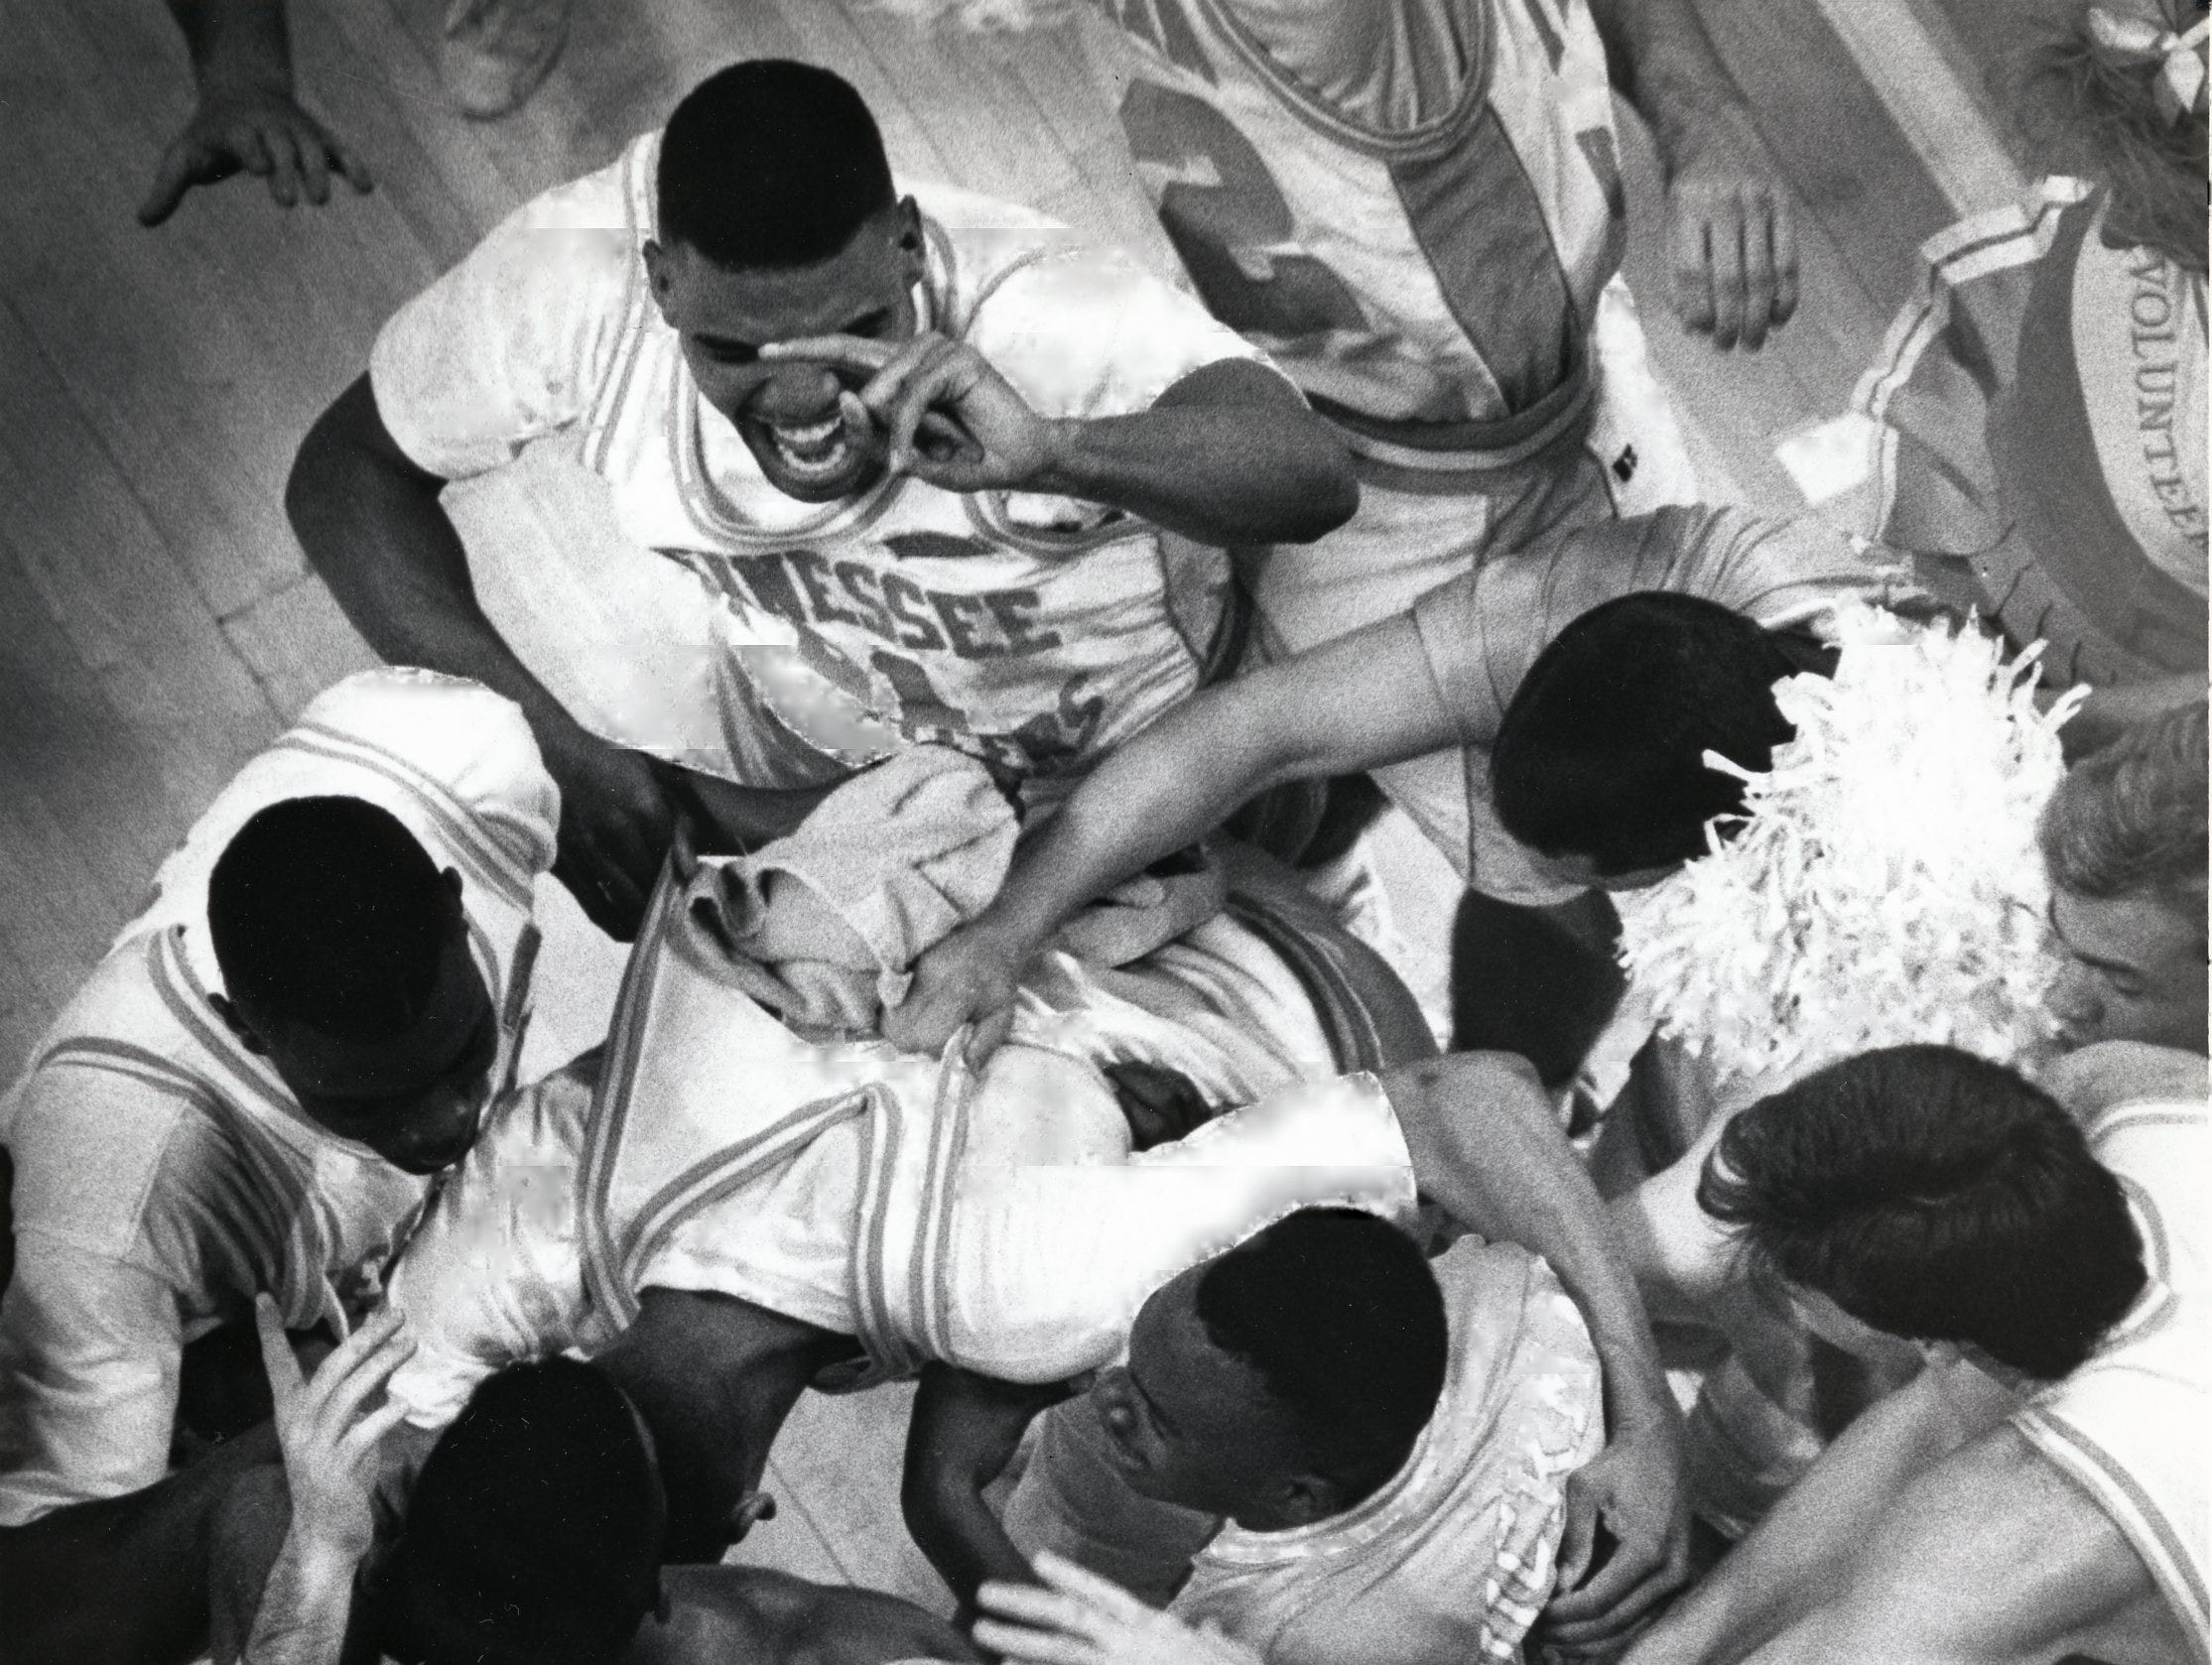 Tuesday night's upset caused a bench clearing celebration for Tennessee as they ran out on the floor hugging each other after beating LSU in January 1991.